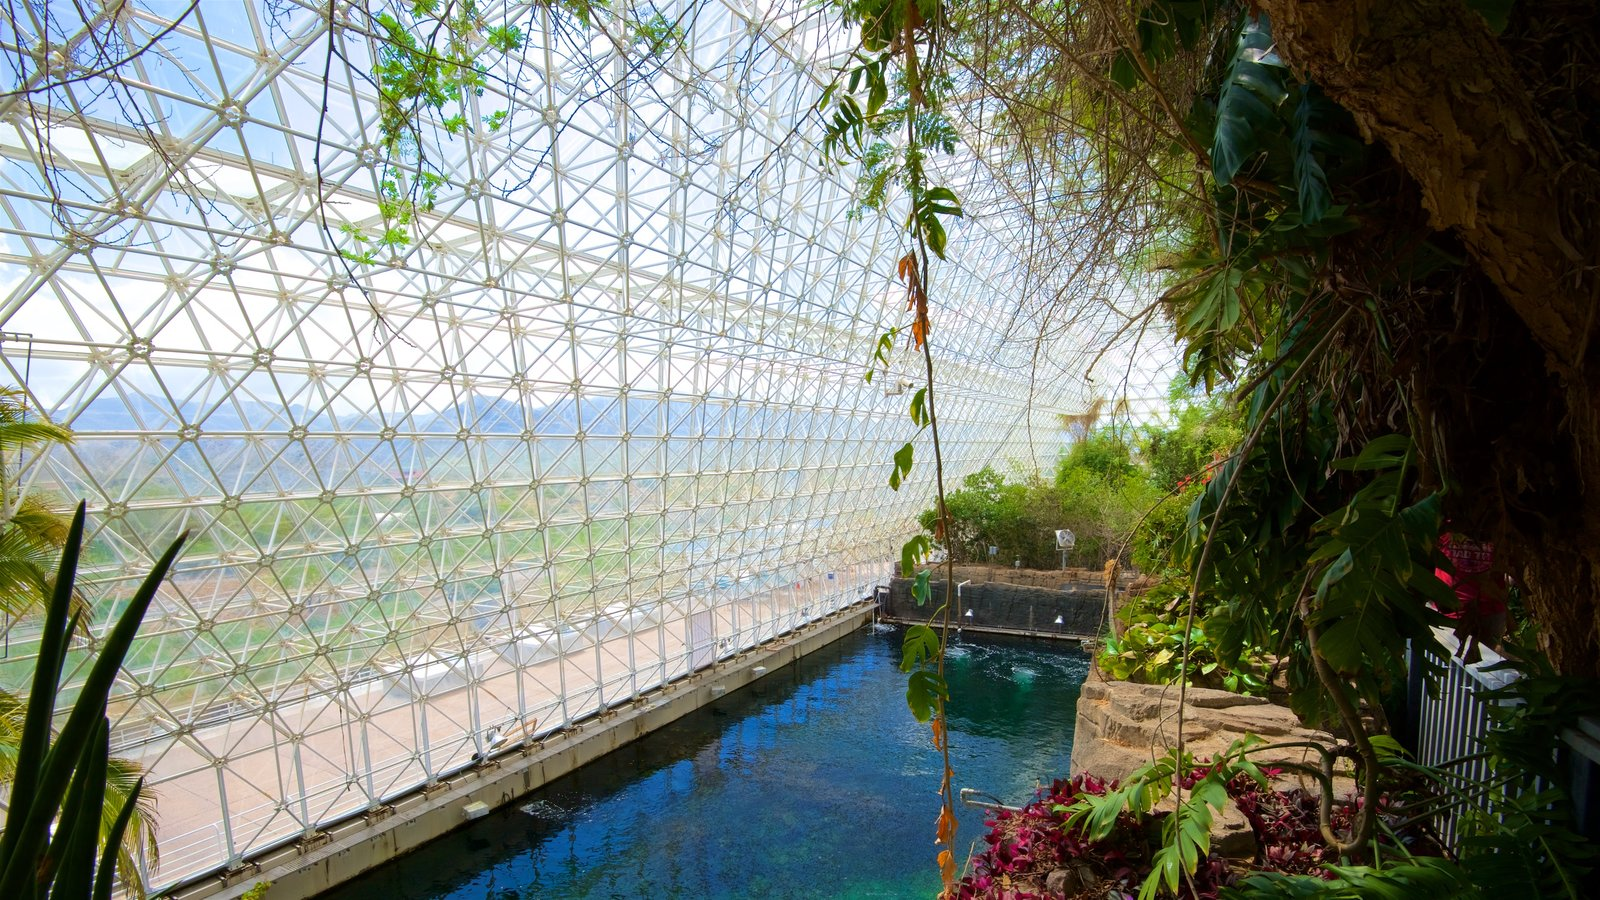 Biosphere 2 Pictures: View Photos & Images of Biosphere 2